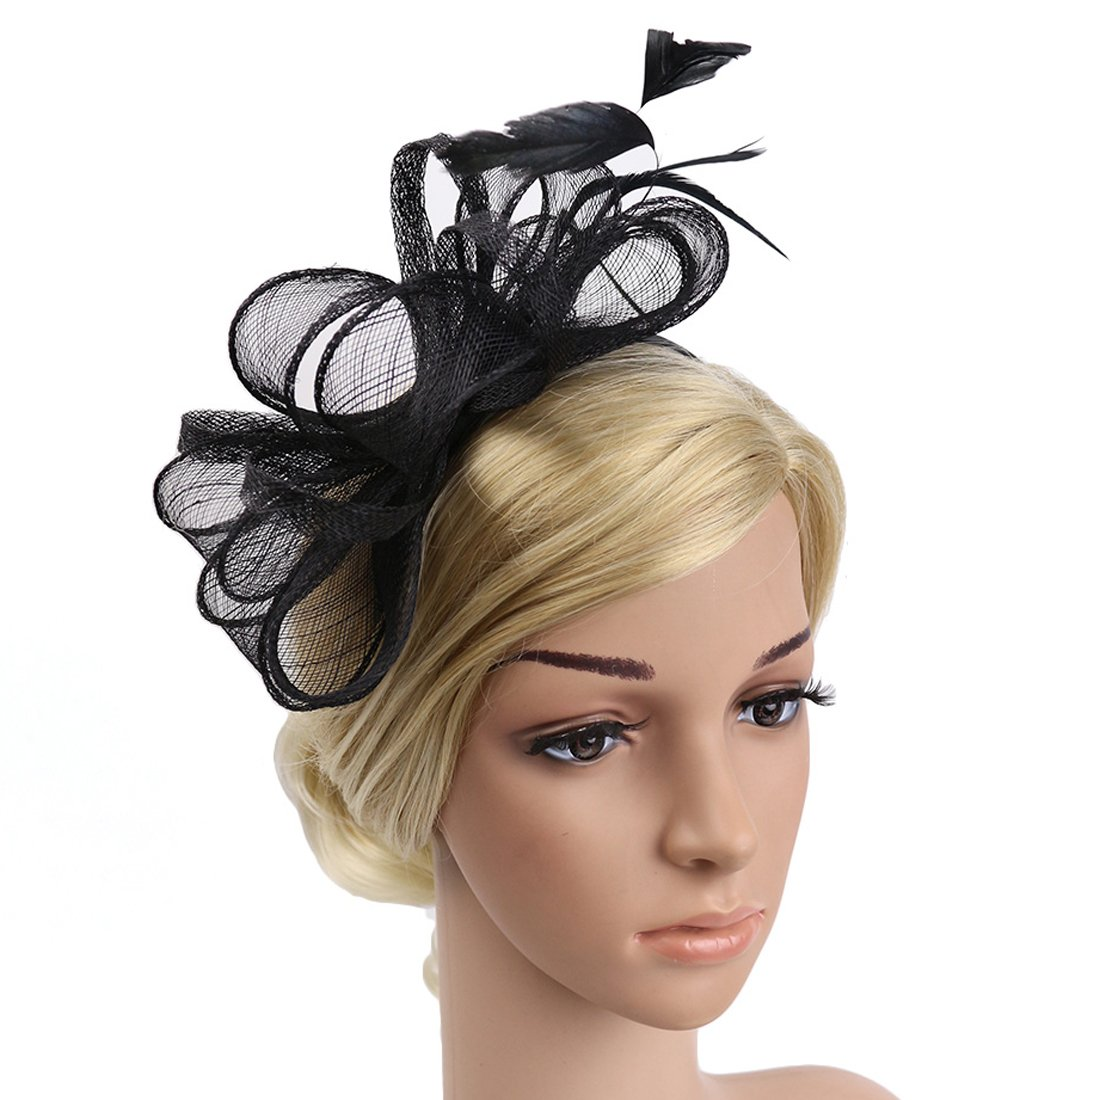 JaosWish Sinamay Vintage Women Fascinators Derby Hat Feather With Headband Cocktail Headpiece For Tea Party Wedding